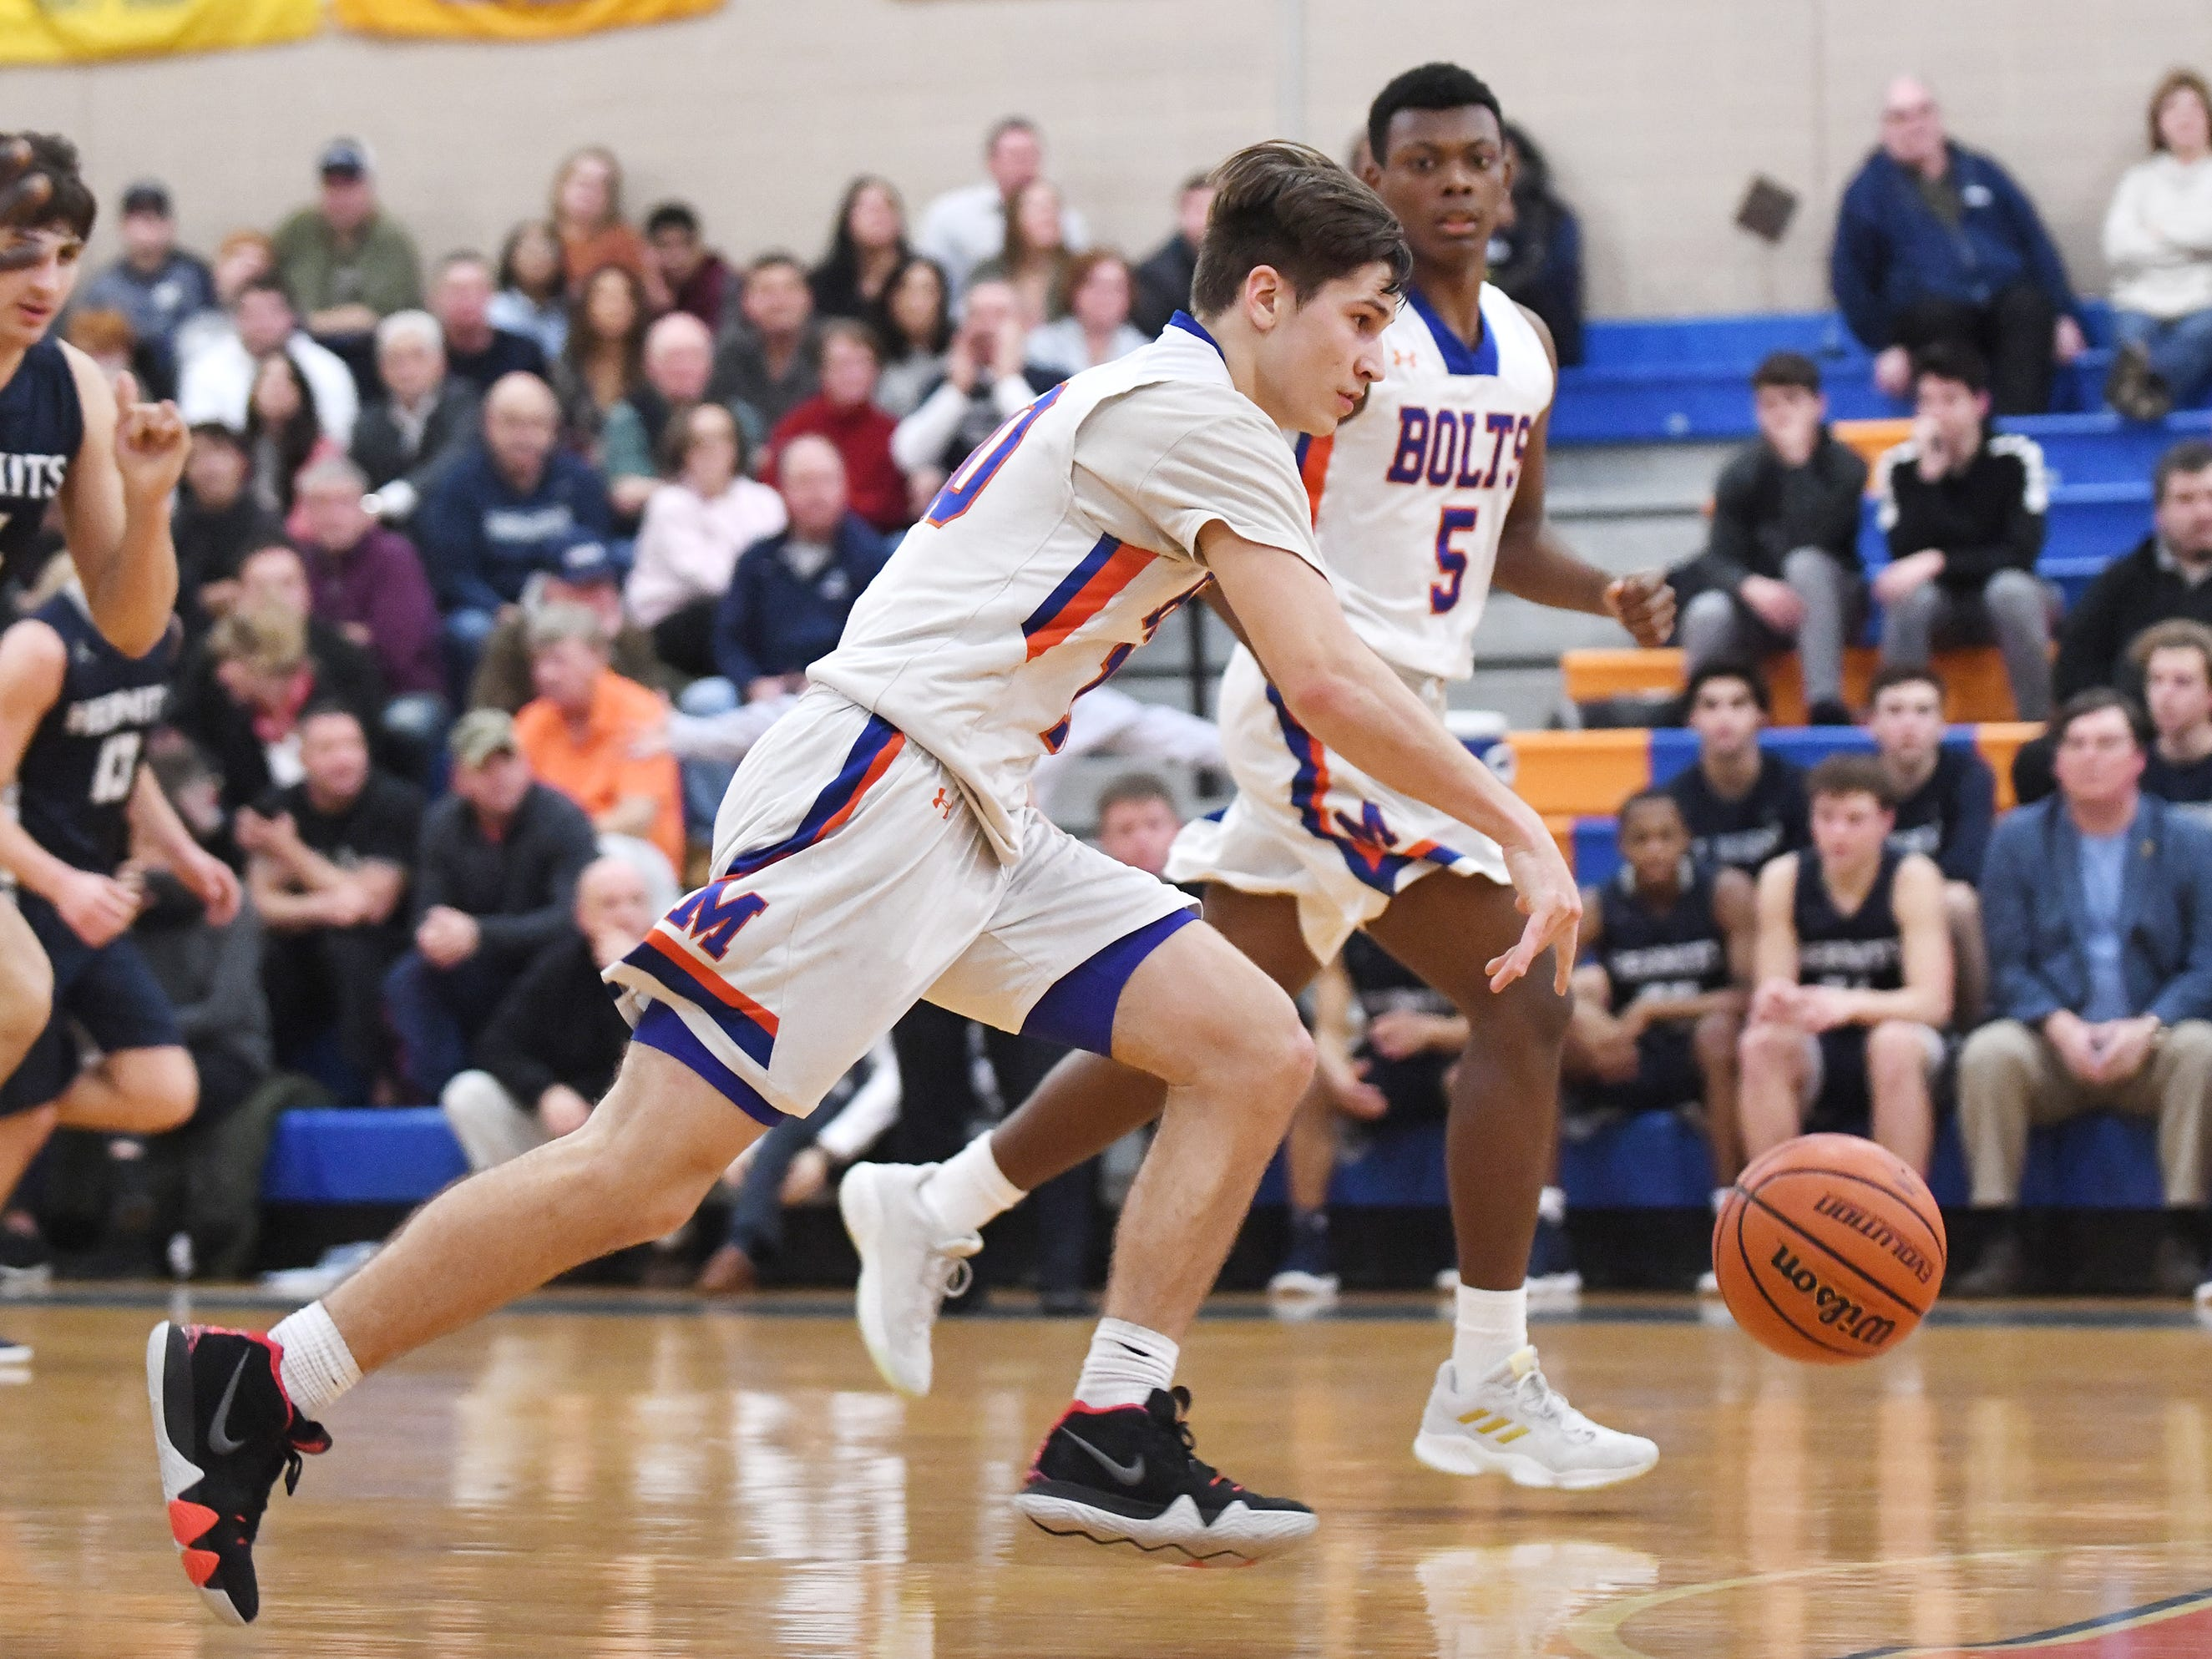 Visiting St. Augustine Prep topped Millville 66-53 on Friday, Jan. 18, 2019.